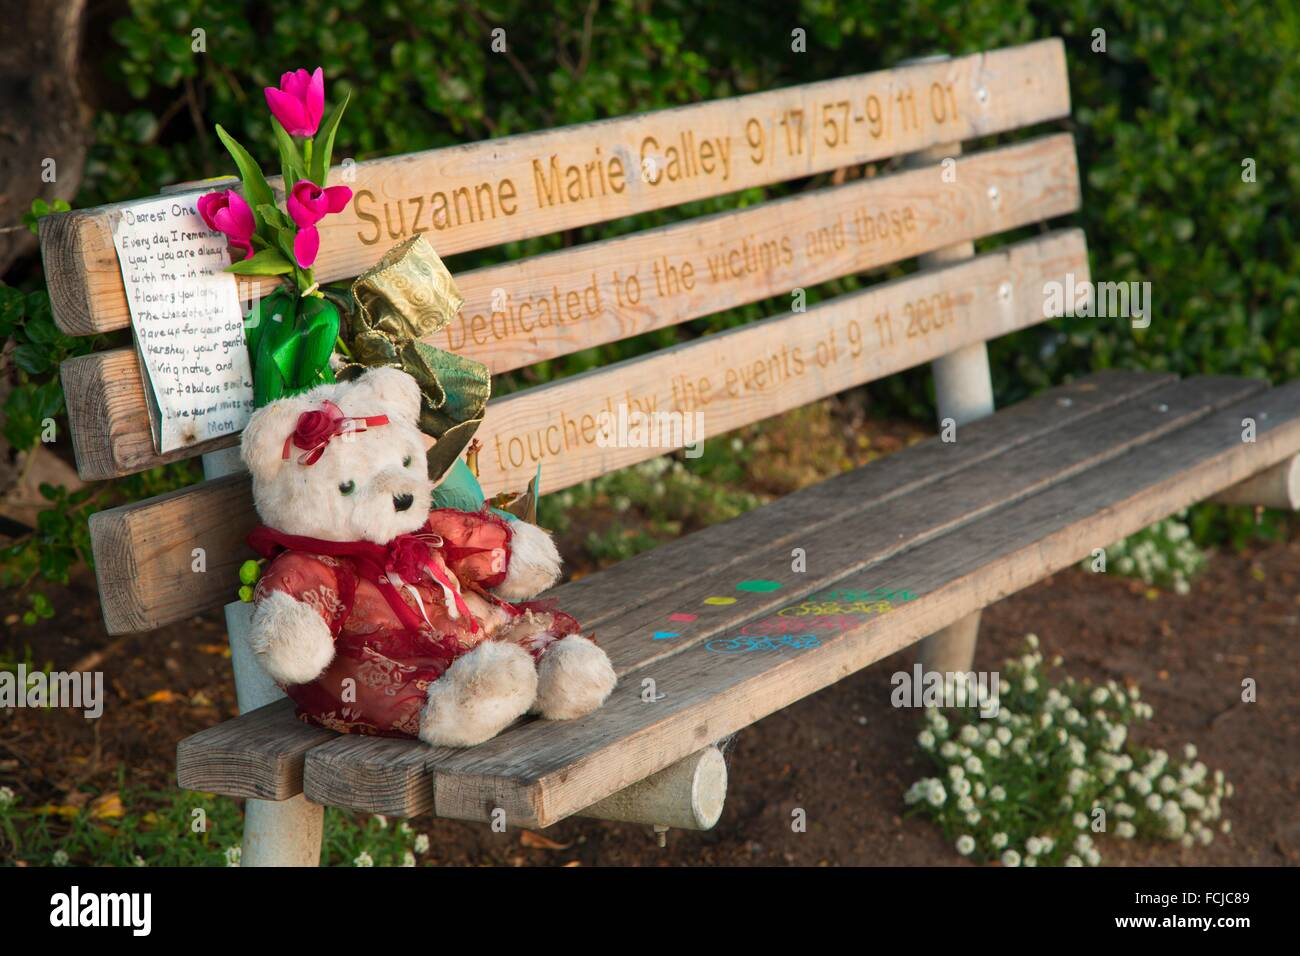 911 Memorial bench, Lovers Point Park, Pacific Grove, California. - Stock Image